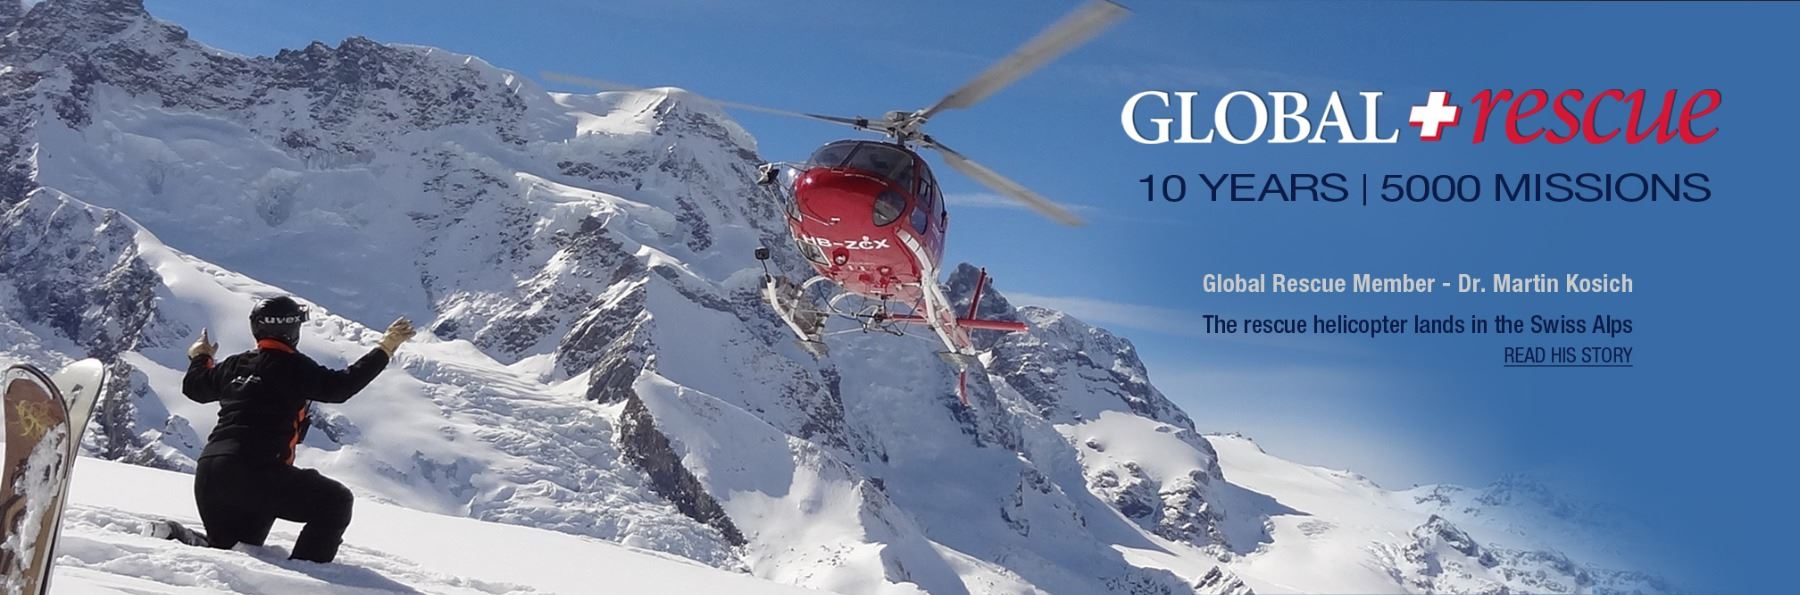 FULL YEAR ABROAD FAMILY TRAVEL SERVICES MEMBERSHIP - MEDICAL AND SECURITY (100% FULLY DONATED)  GLOB